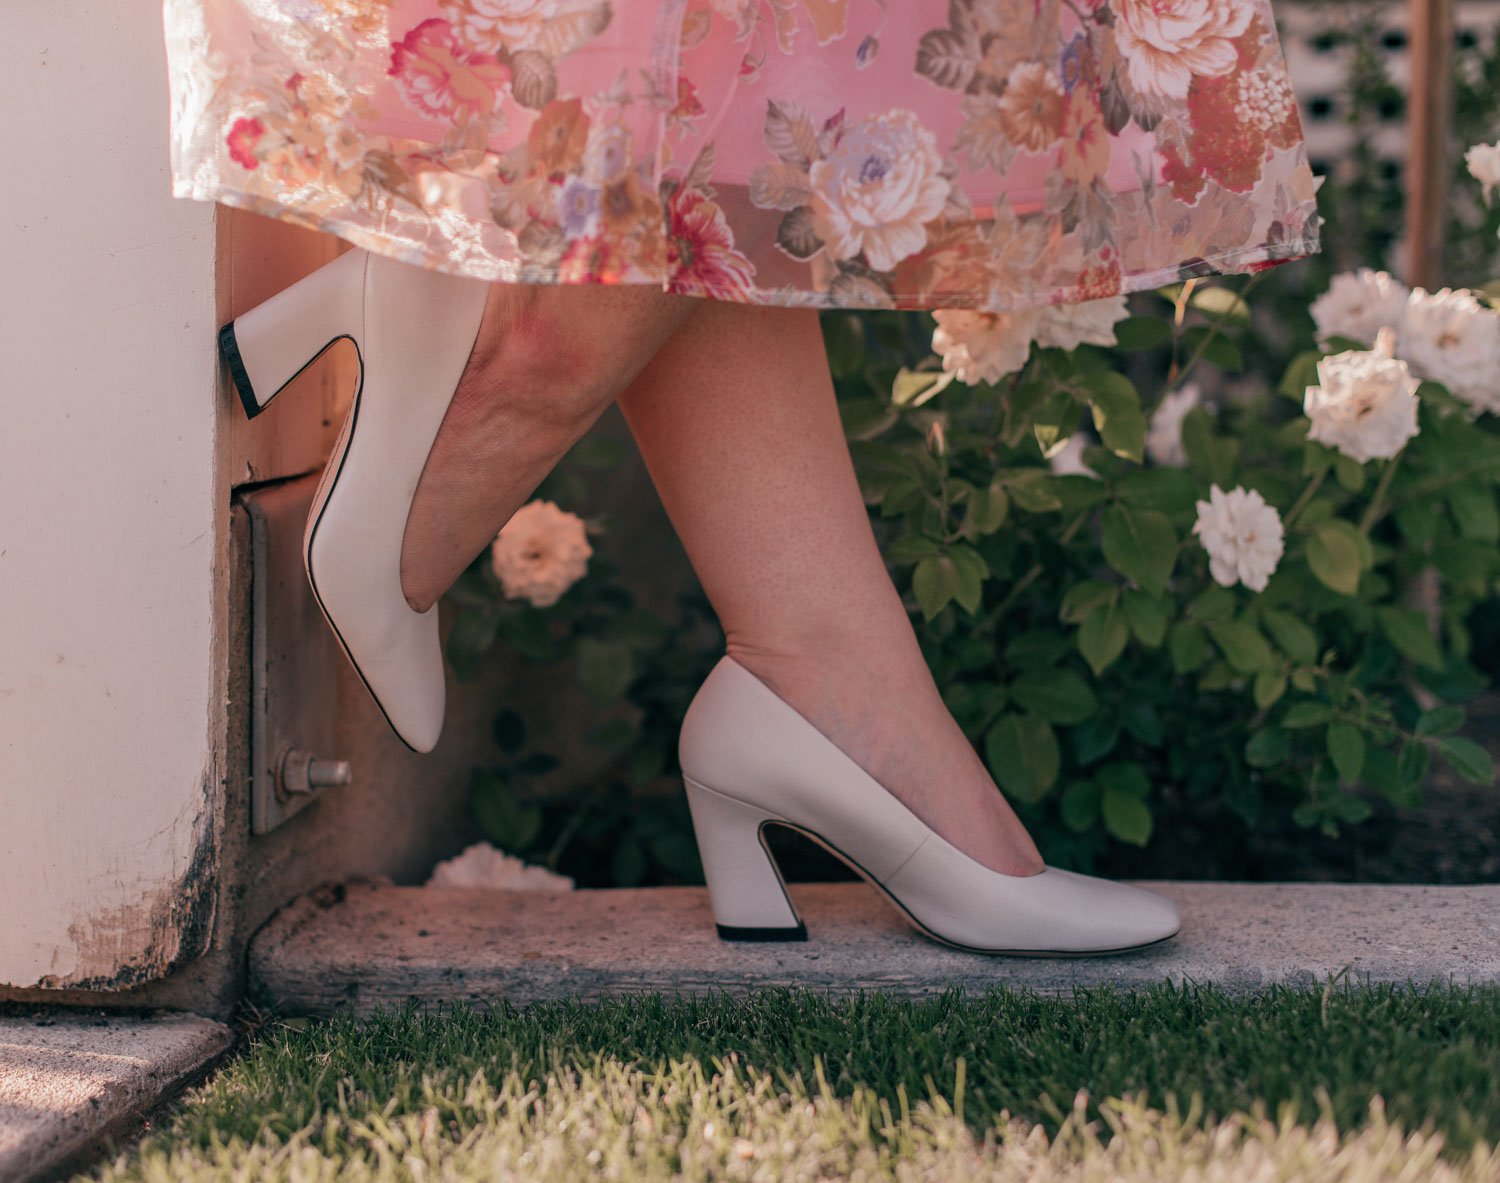 Feminine Fashion Blogger Elizabeth Hugen of Lizzie in Lace shares a feminine floral summer outfit idea including a white lace top, pink floral chicwish skirt and white franco sarto heels